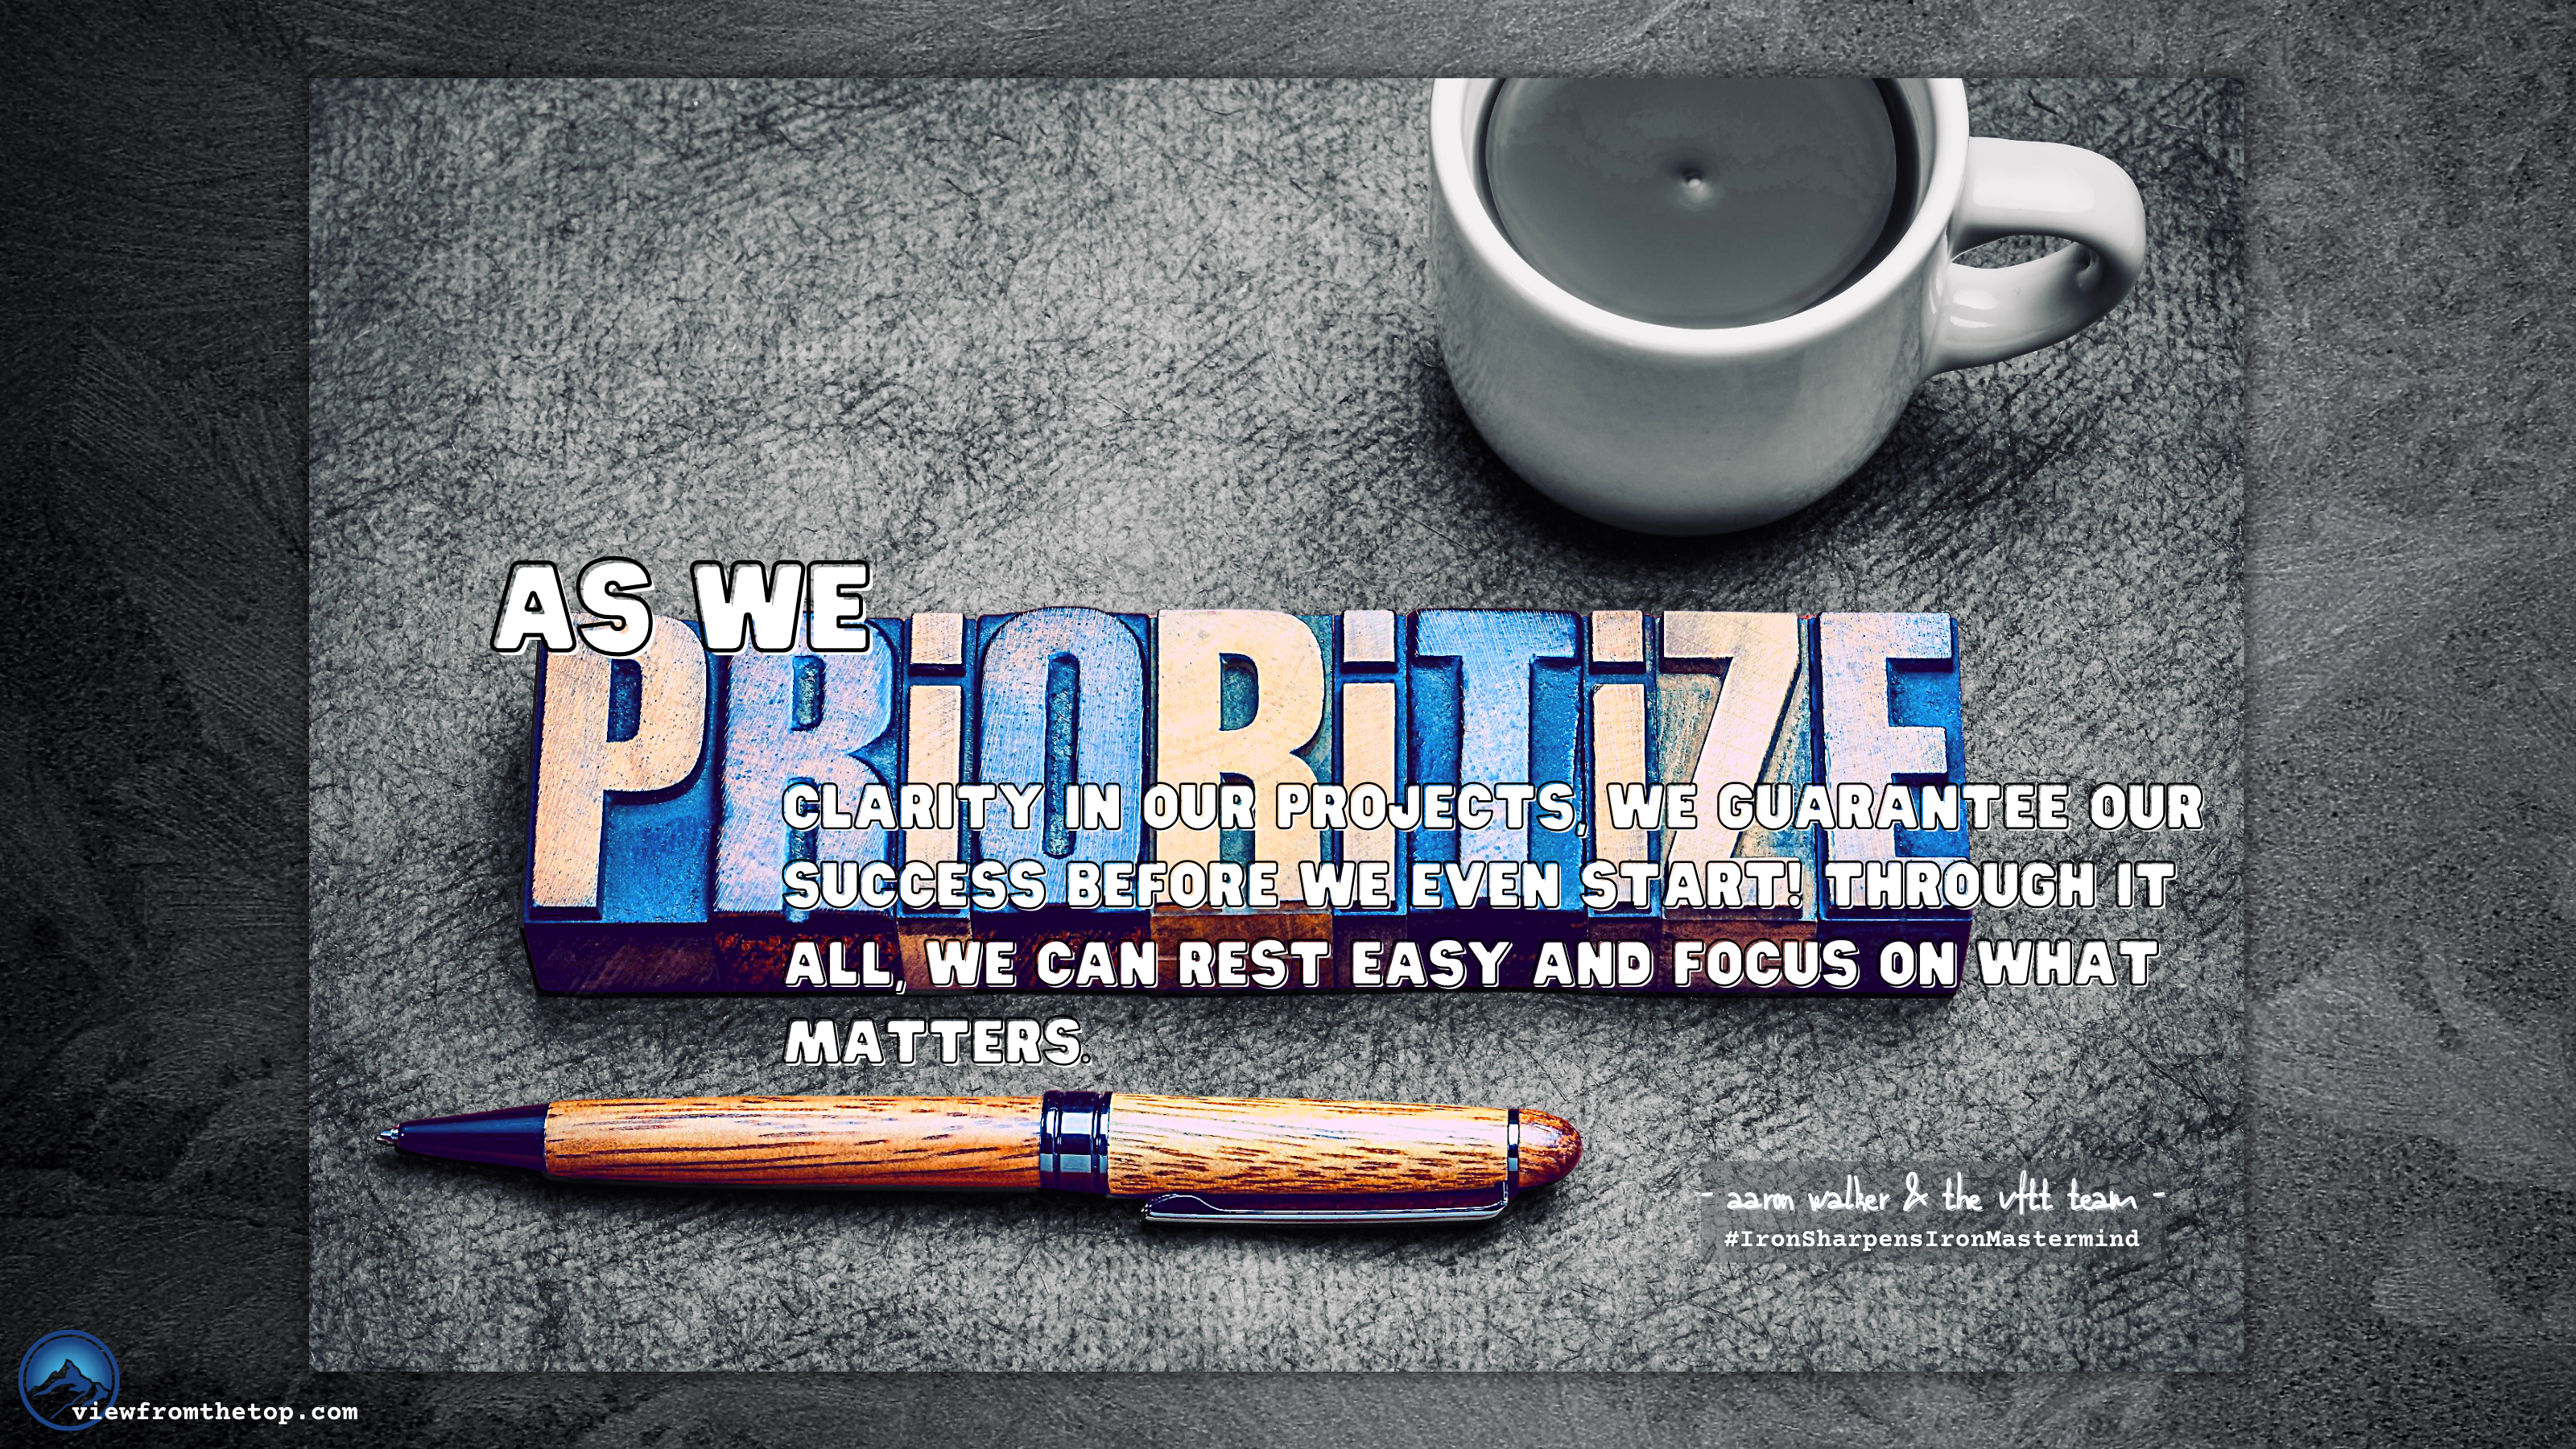 As we prioritize clarity in our projects, we guarantee our success before we even start!